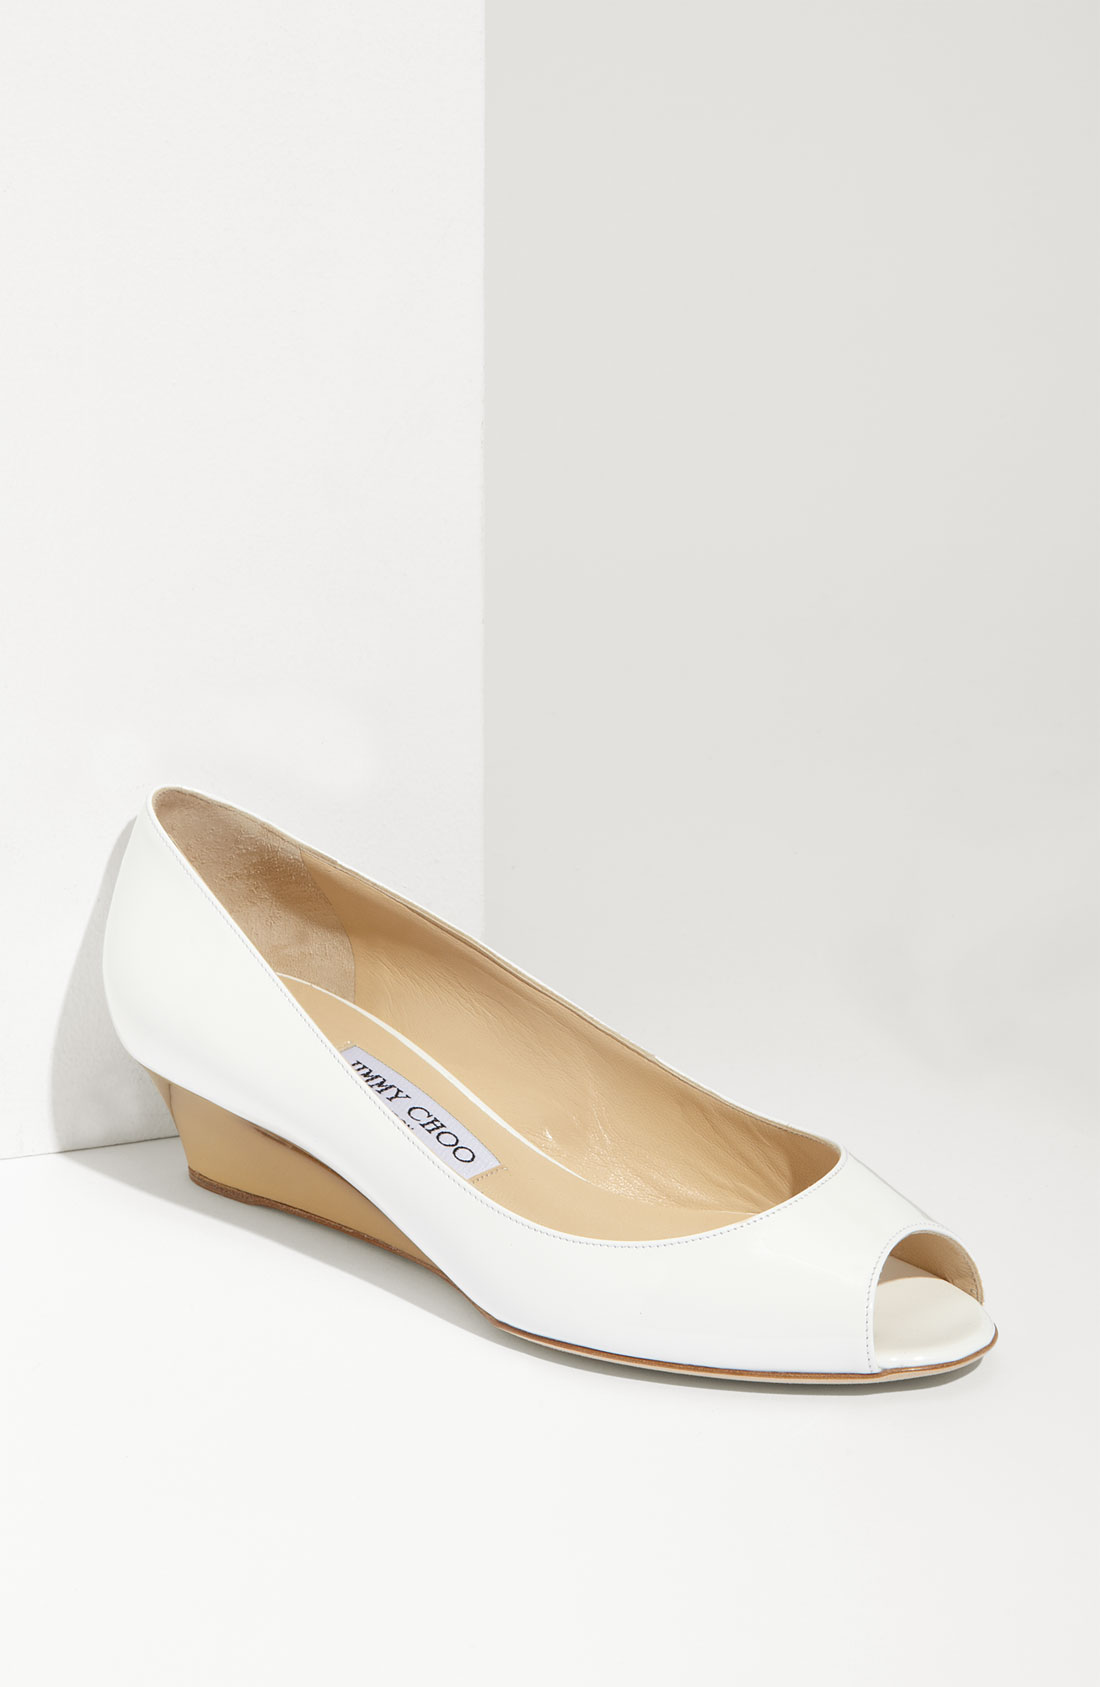 WEDGES Walkable, elongating, feminine — the latest collection of women's wedges, from low-heel classics to platform styles and sandals, designed in leather, suede, metallic and neutrals.